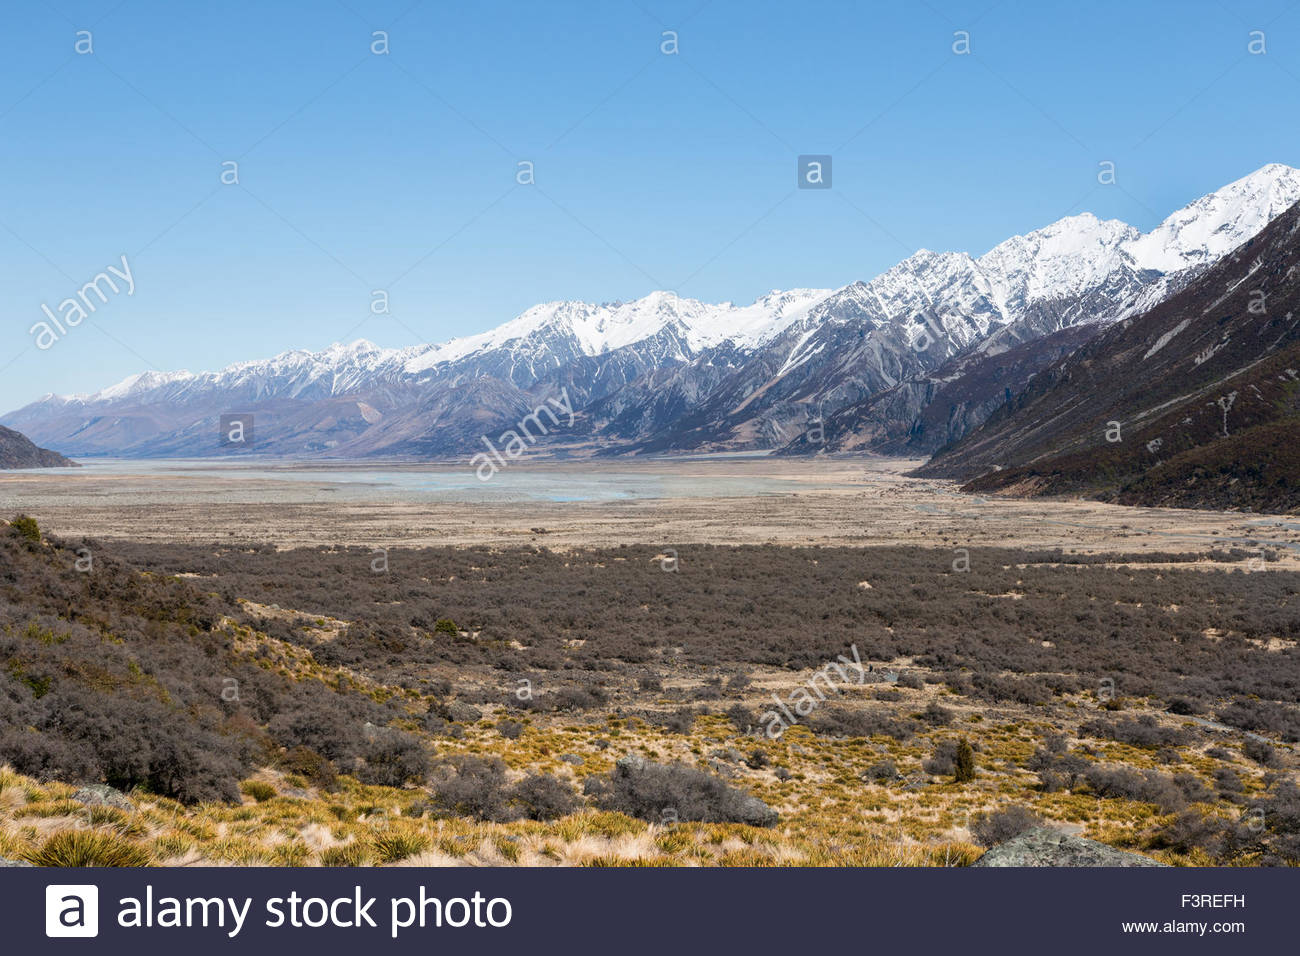 Riverbed of Tasman River near foothill of mt. Cook, New Zealand - Stock Image